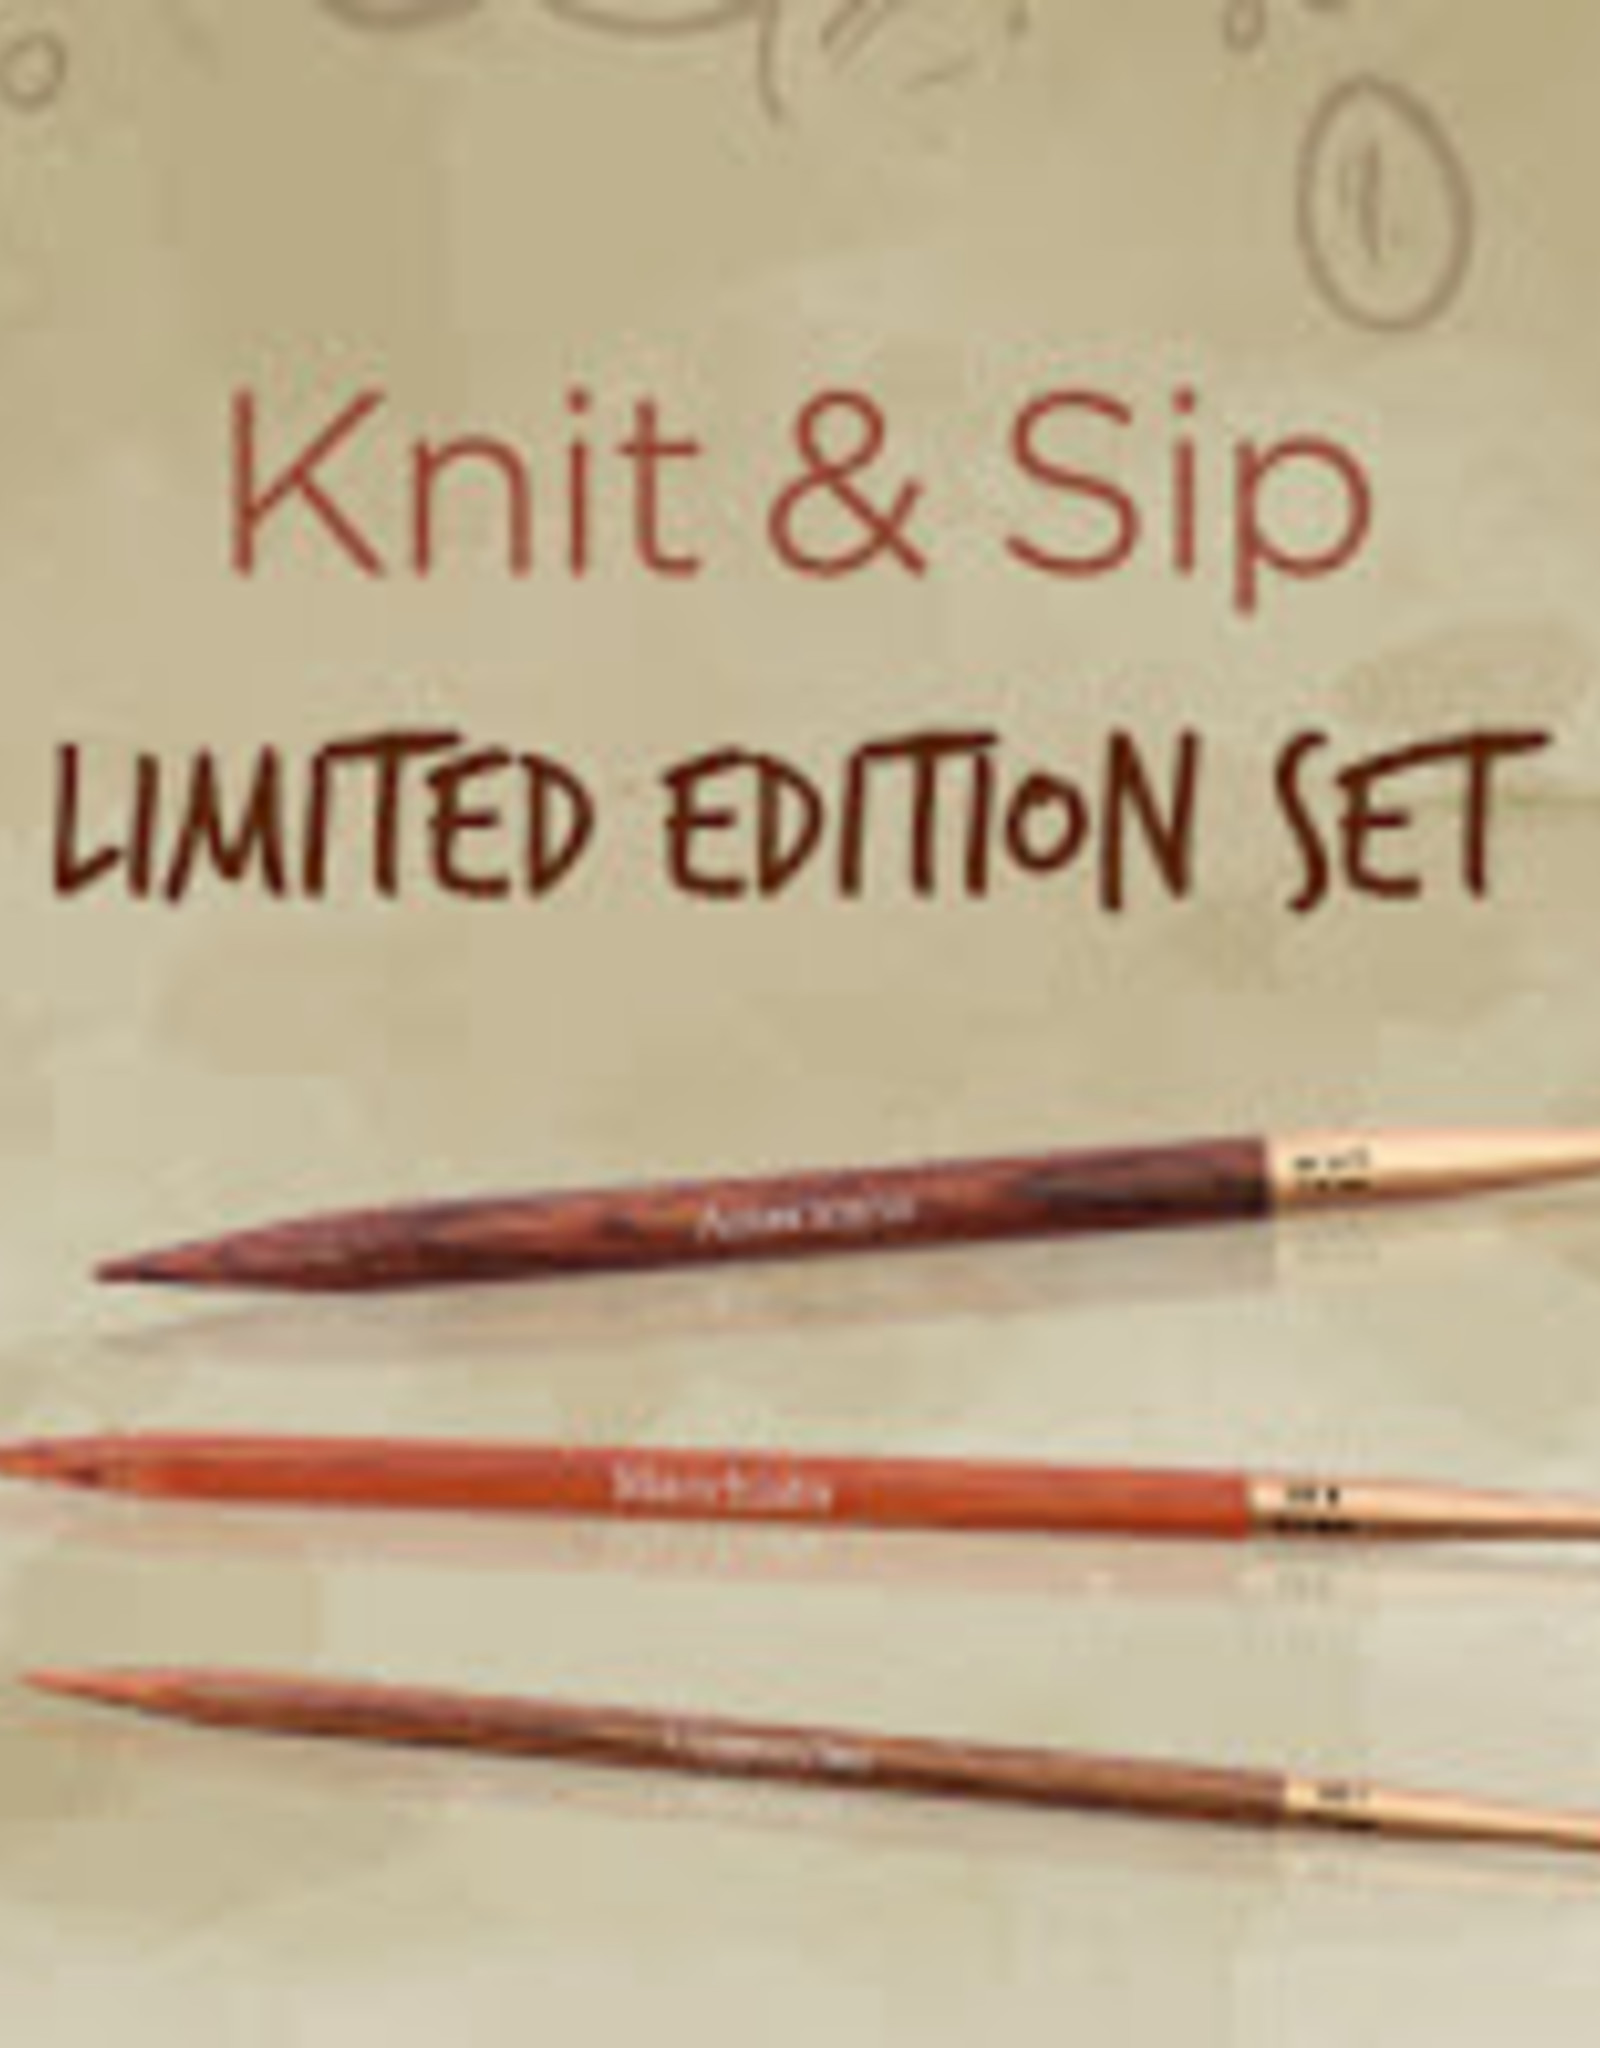 Knit & Sip IC Set from Knitter's Pride